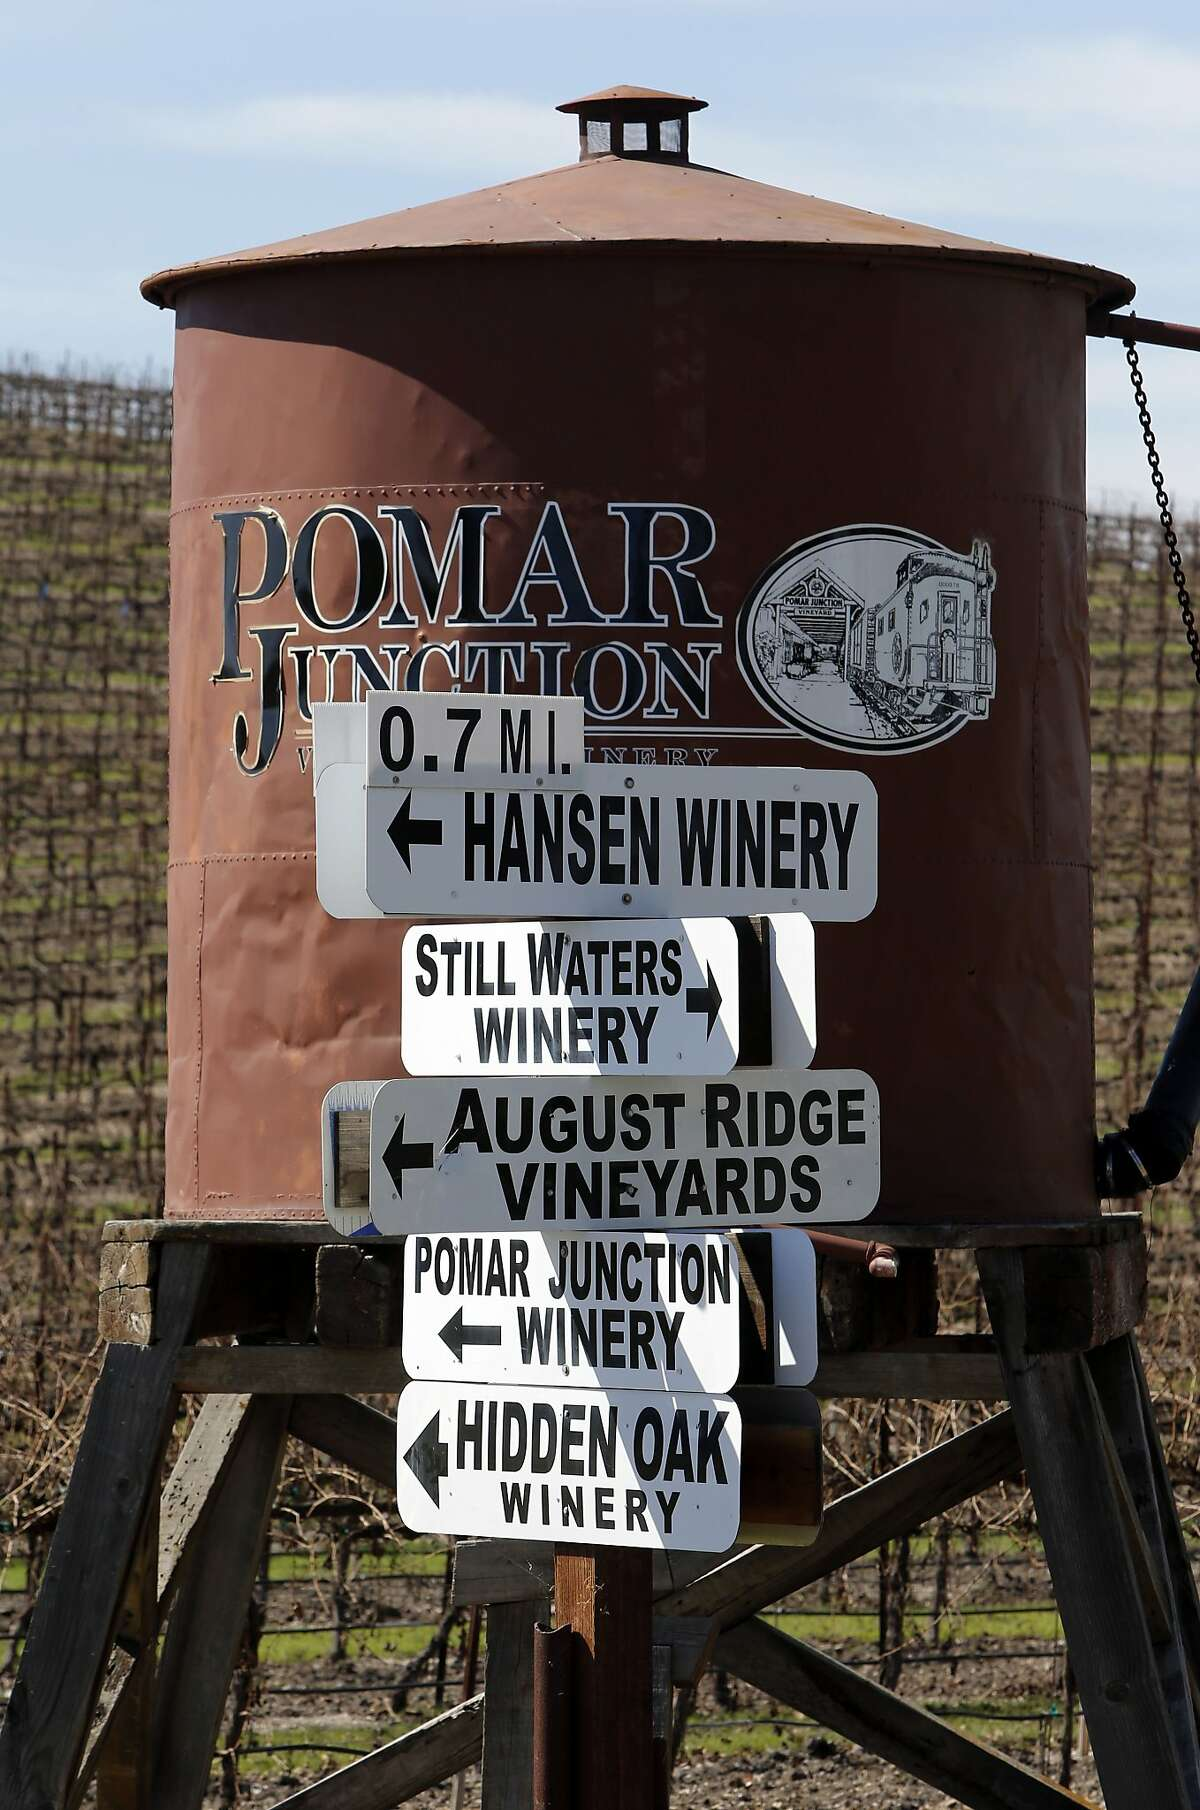 Just some of the many wineries that dot the hills surrounding Templeton, Calif. south of Paso Robles, as seen on Friday March 14, 2014. With the current drought a bitter water fight between rural homeowners and large wineries has splintered Paso Robles and surrounding communities.